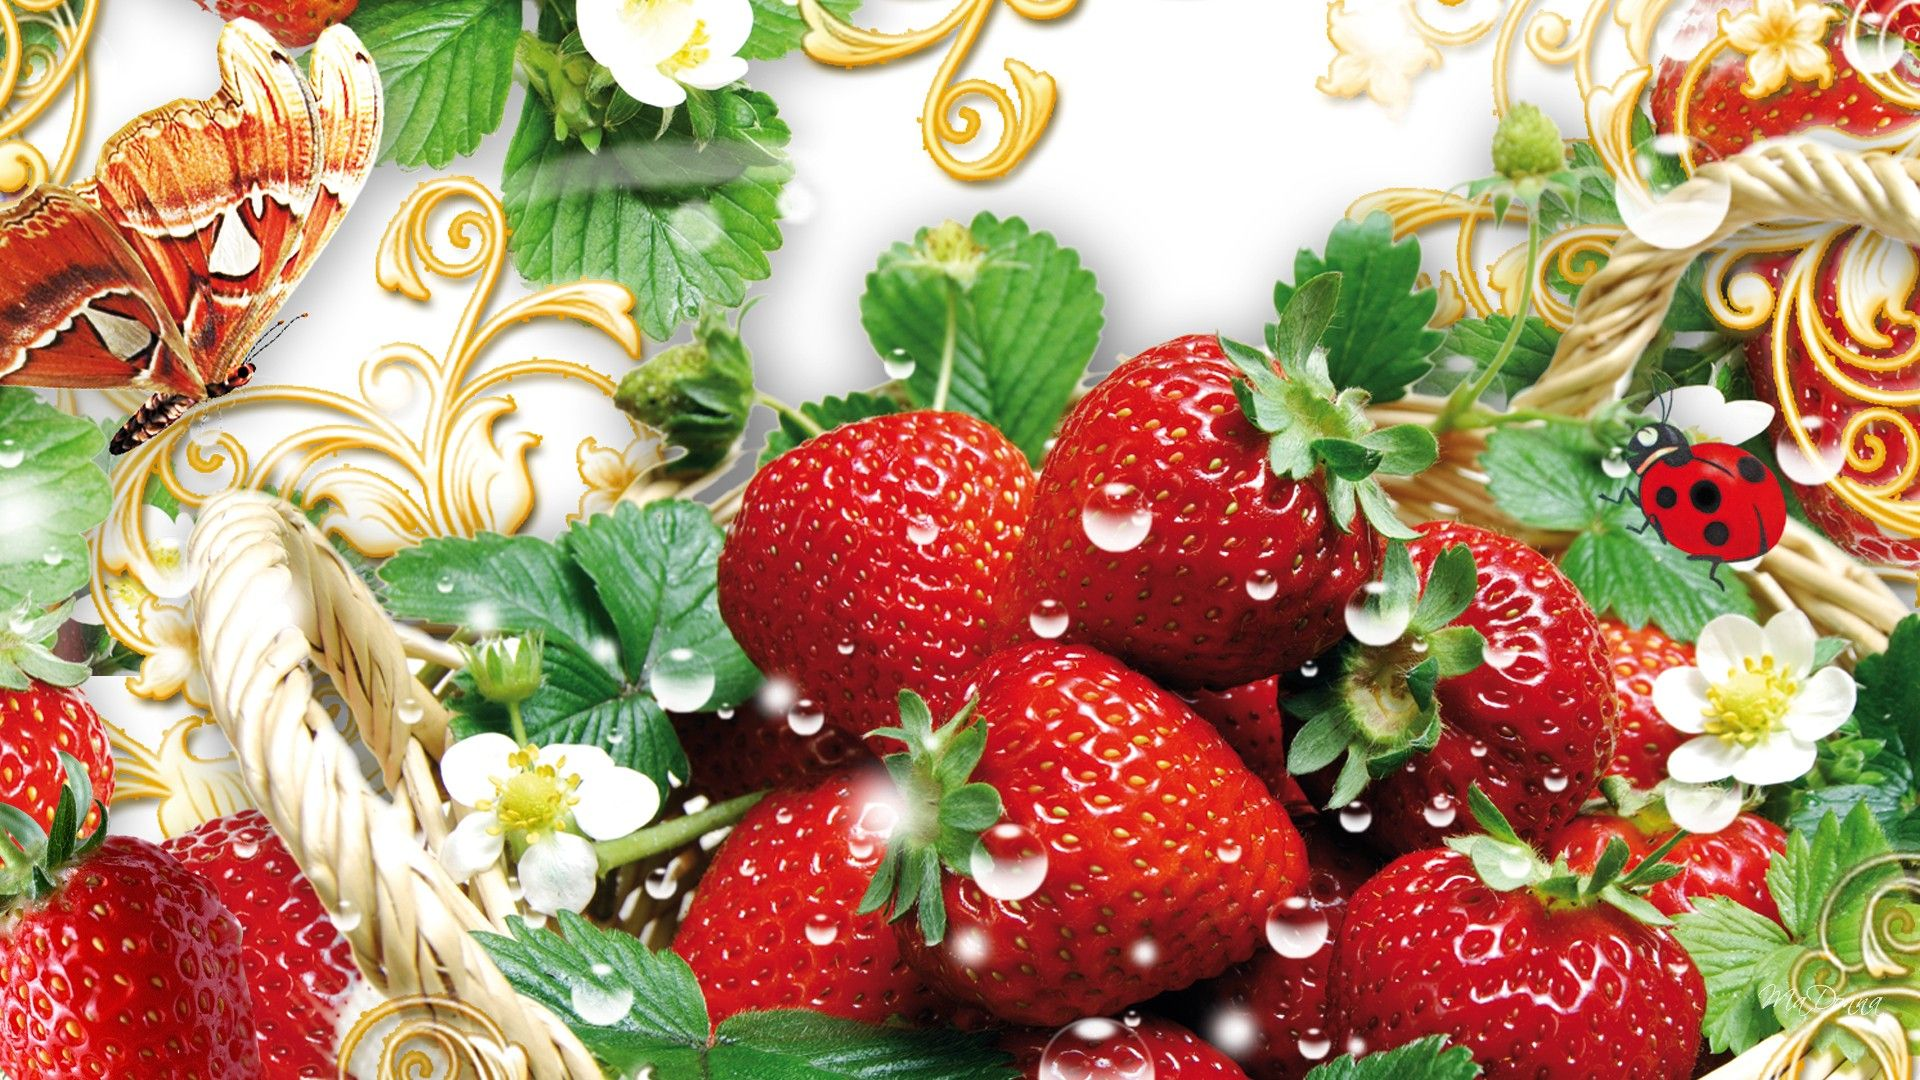 Flower With Strawberry Hd Wallpaper Free Download Wallpaper Free Download Strawberry Hd Wallpaper